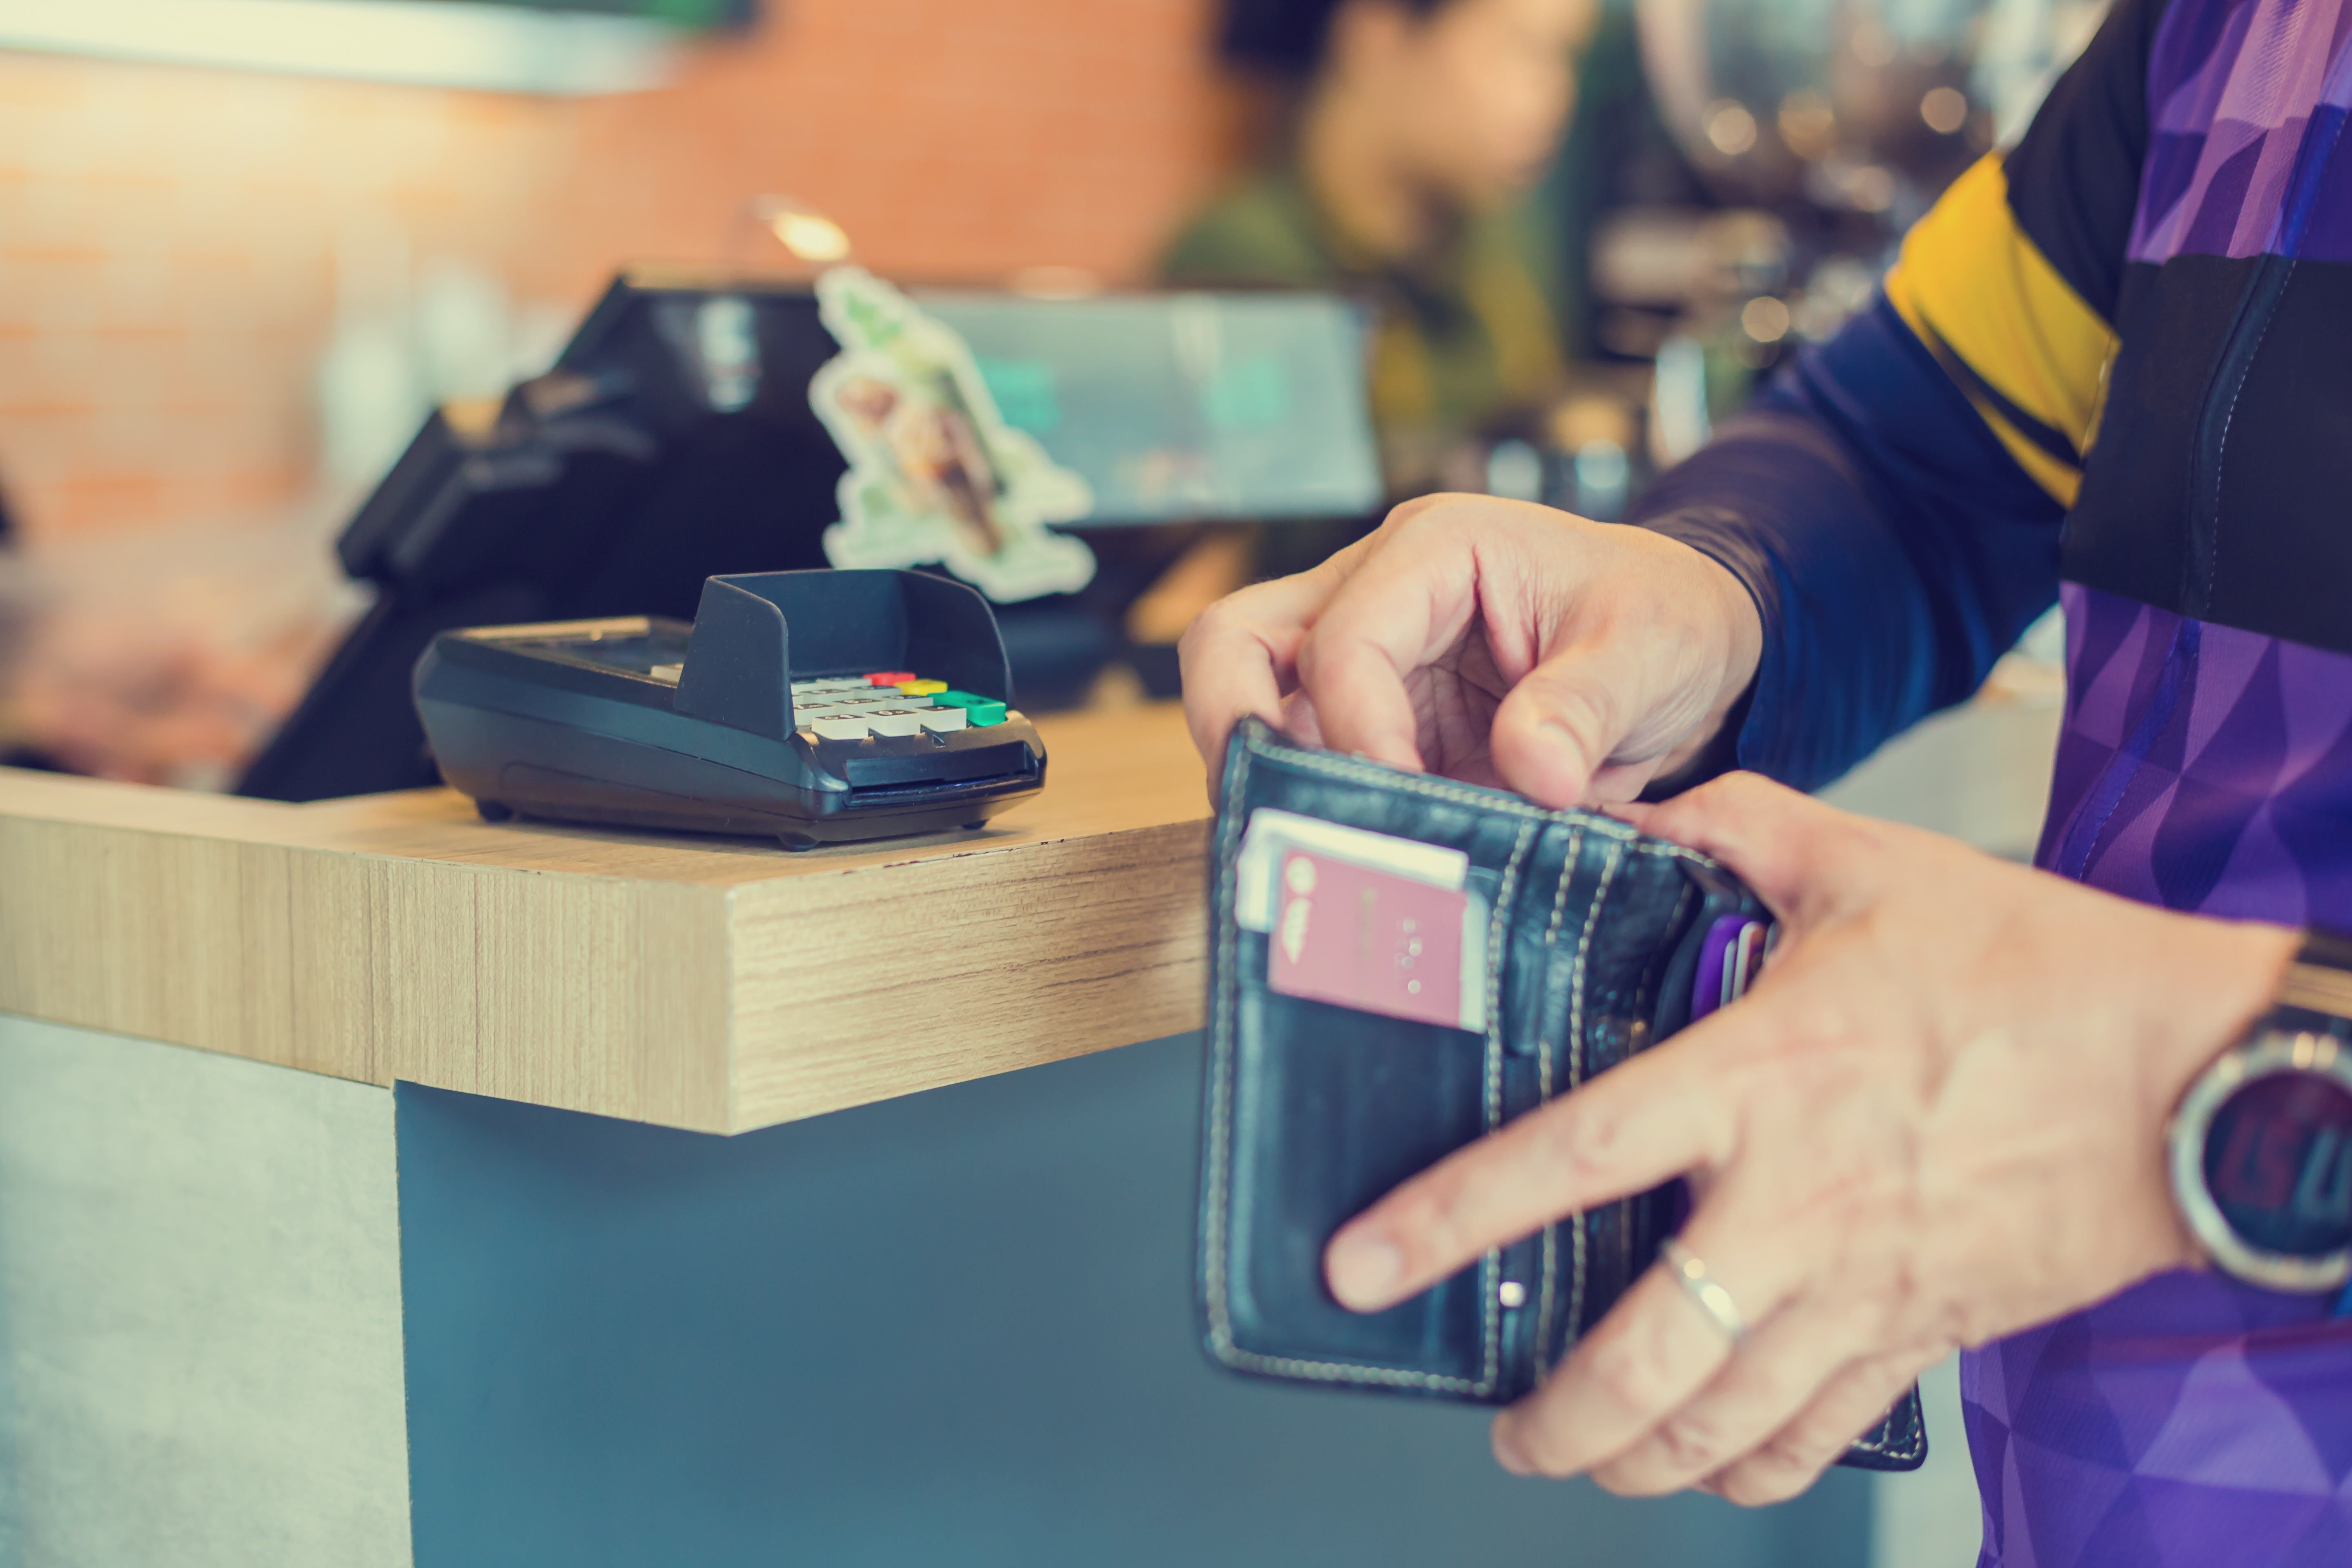 Do Unemployment Checks Affect Food Stamp Amounts? | Career Trend